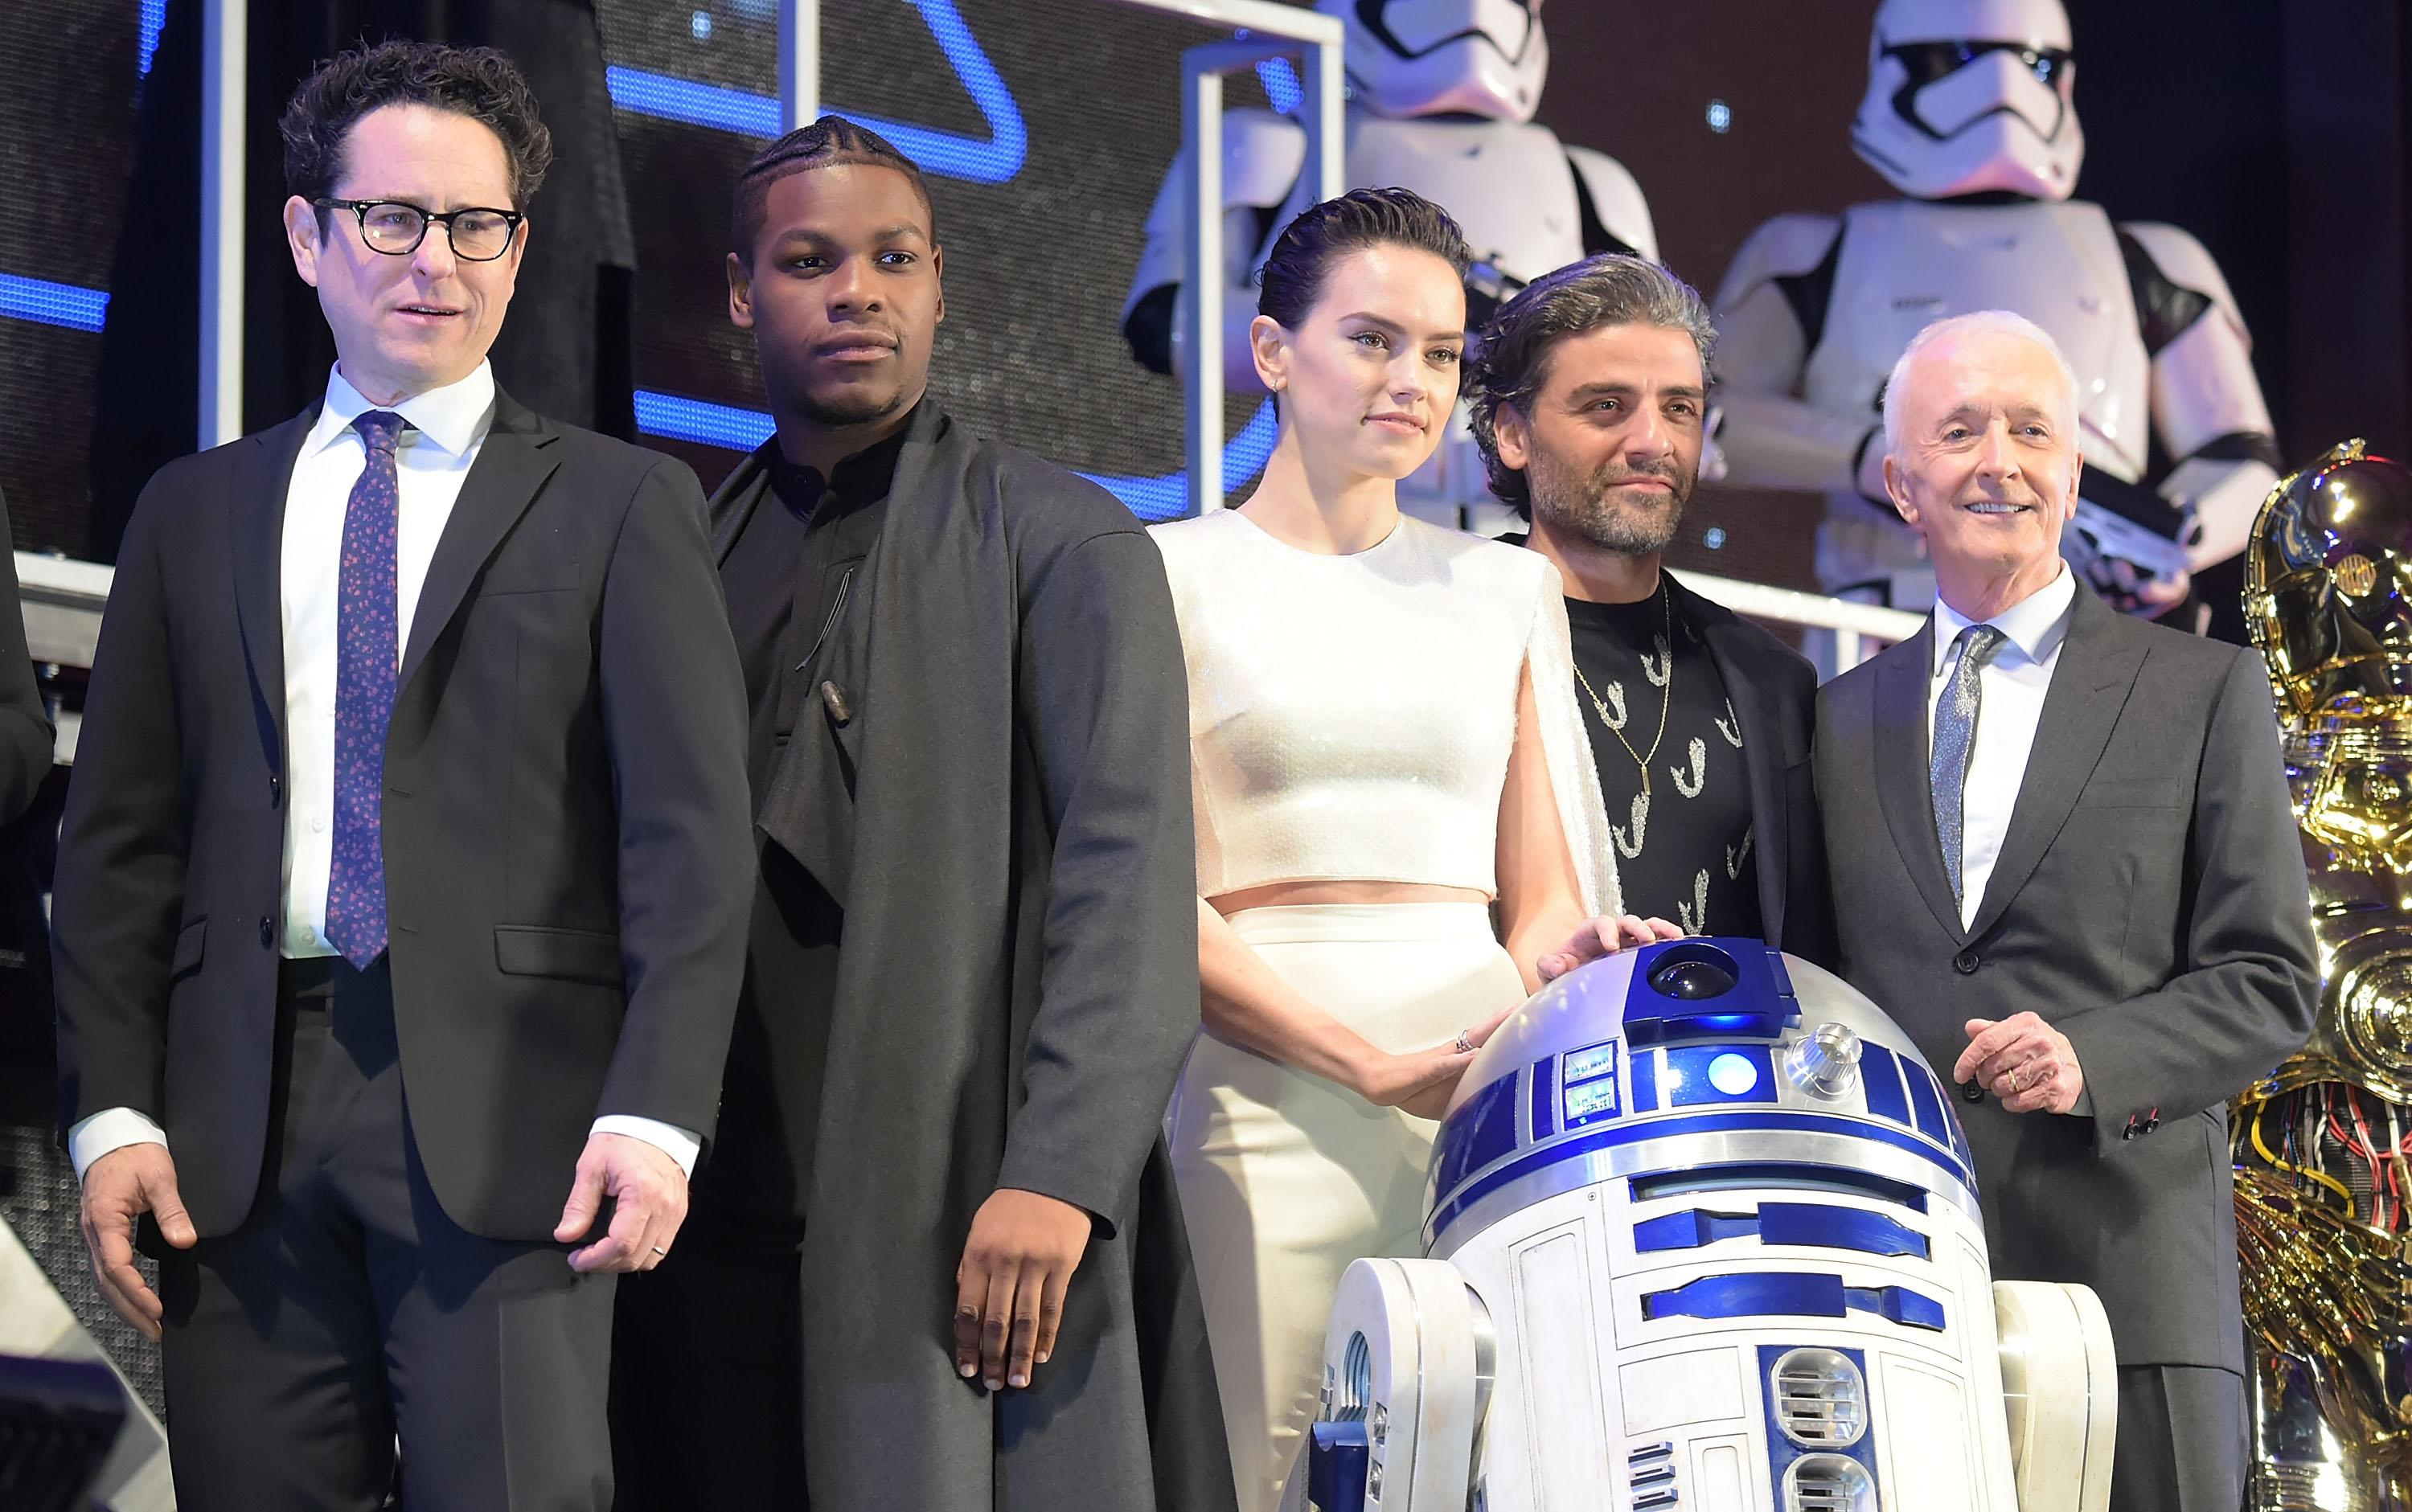 TOKYO, JAPAN - DECEMBER 11: (L-R) Director J.J. Abrams, John Boyega, Daisy Ridley, Oscar Isaac and Anthony Daniels attend the special fan event for 'Star Wars: The Rise of Skywalker' at Roppongi Hills on December 11, 2019 in Tokyo, Japan. (Photo by Jun Sato/WireImage)